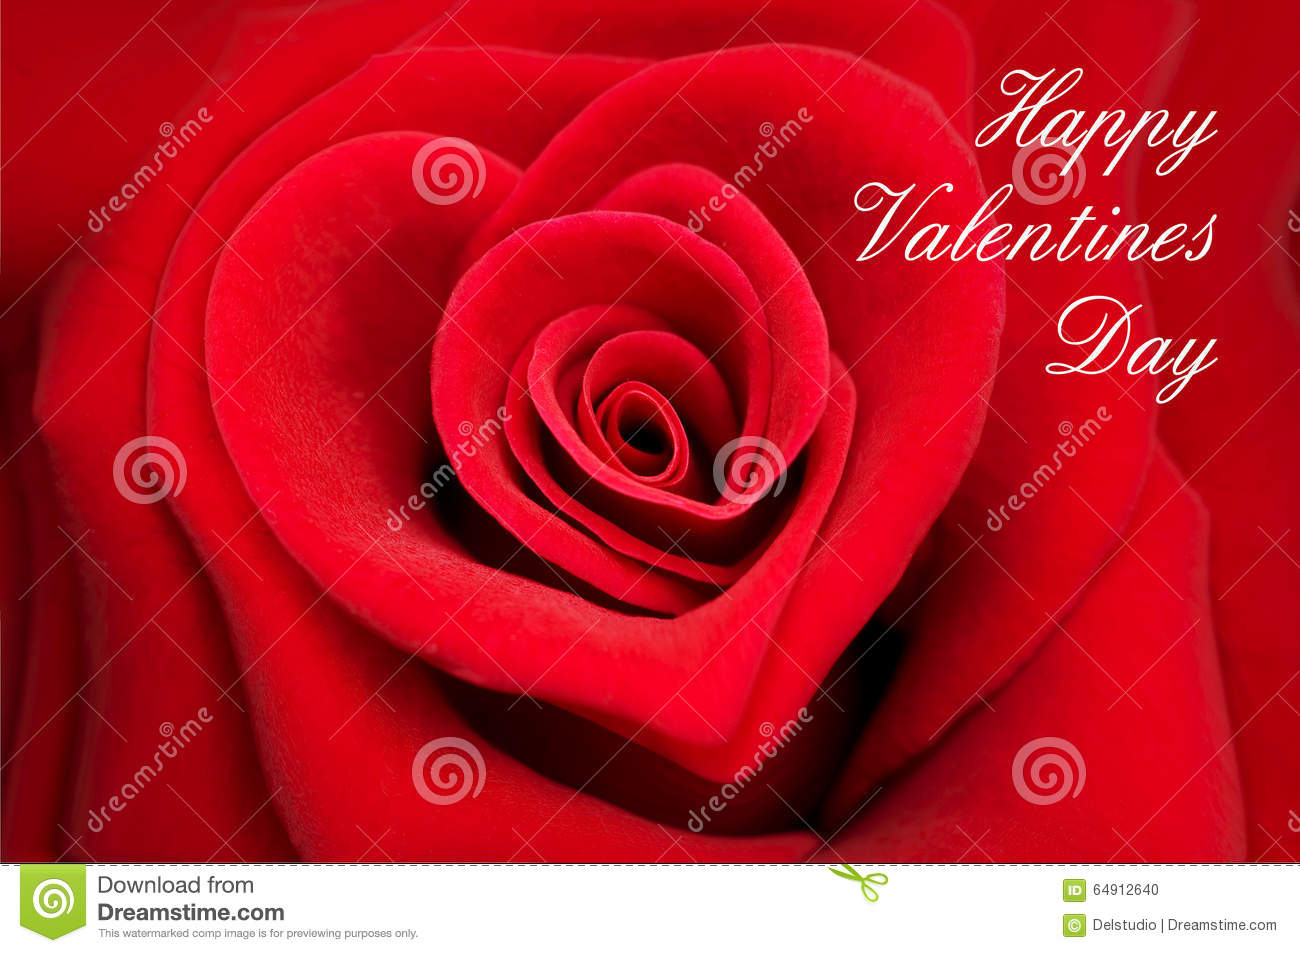 Valentine Greeting Card Red Rose In Shape Of A Heart Photo – Picture of a Valentine Card